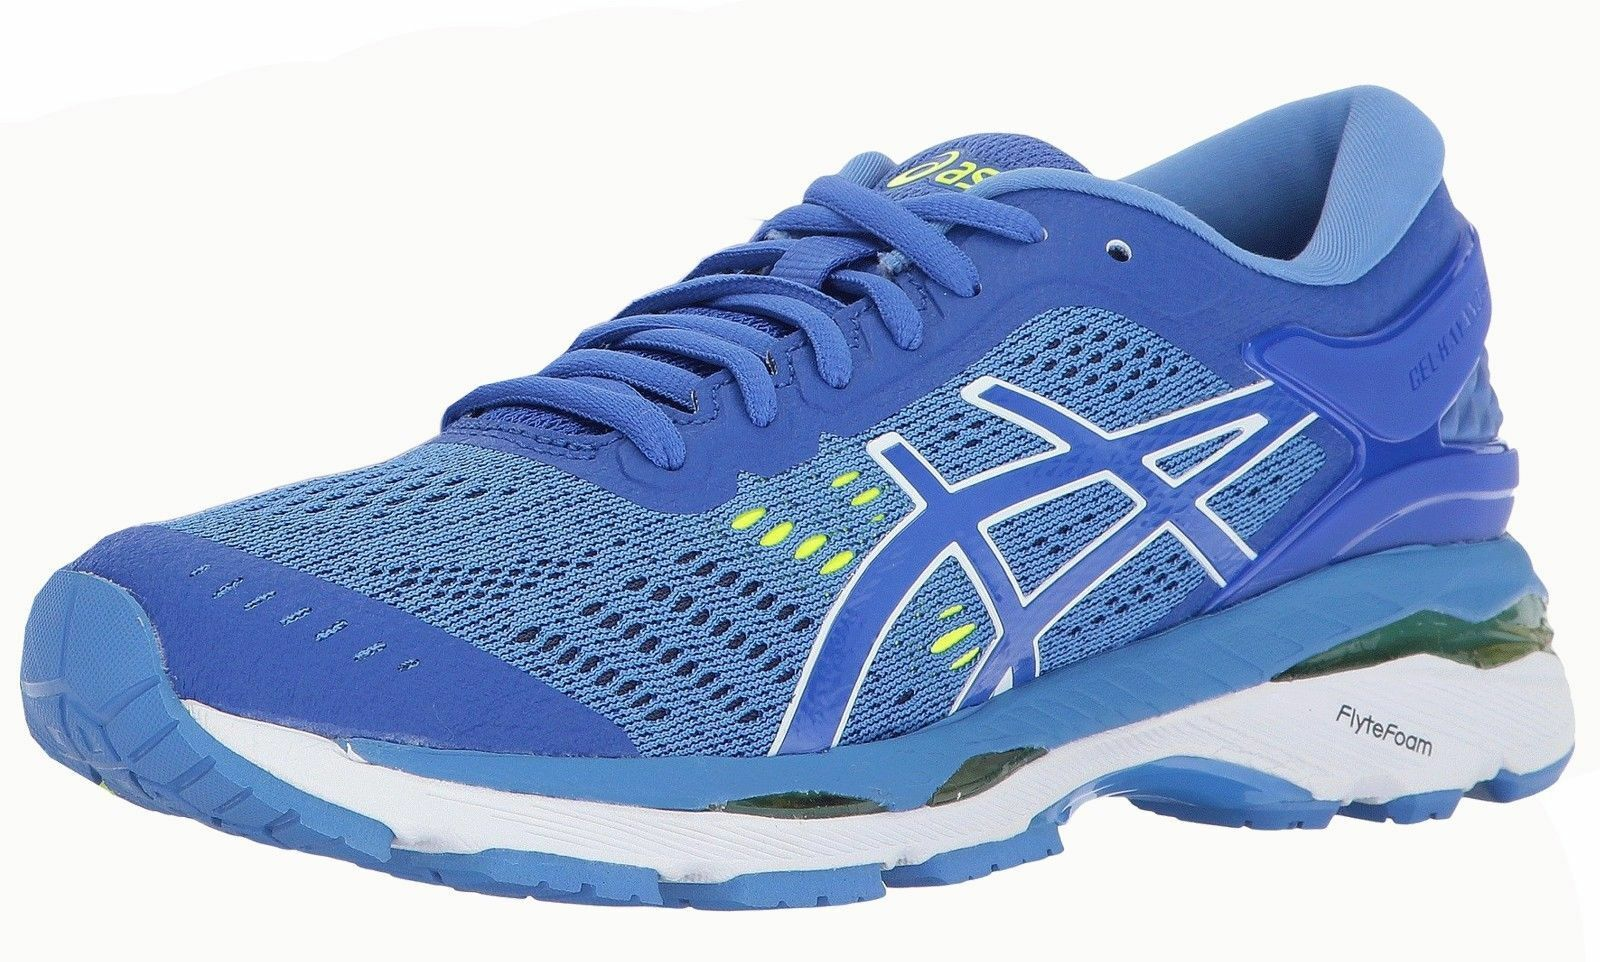 ASICS WOMENS GEL KAYANO 24 2A Width NARROW SIZE 7 RUNNING SHOES